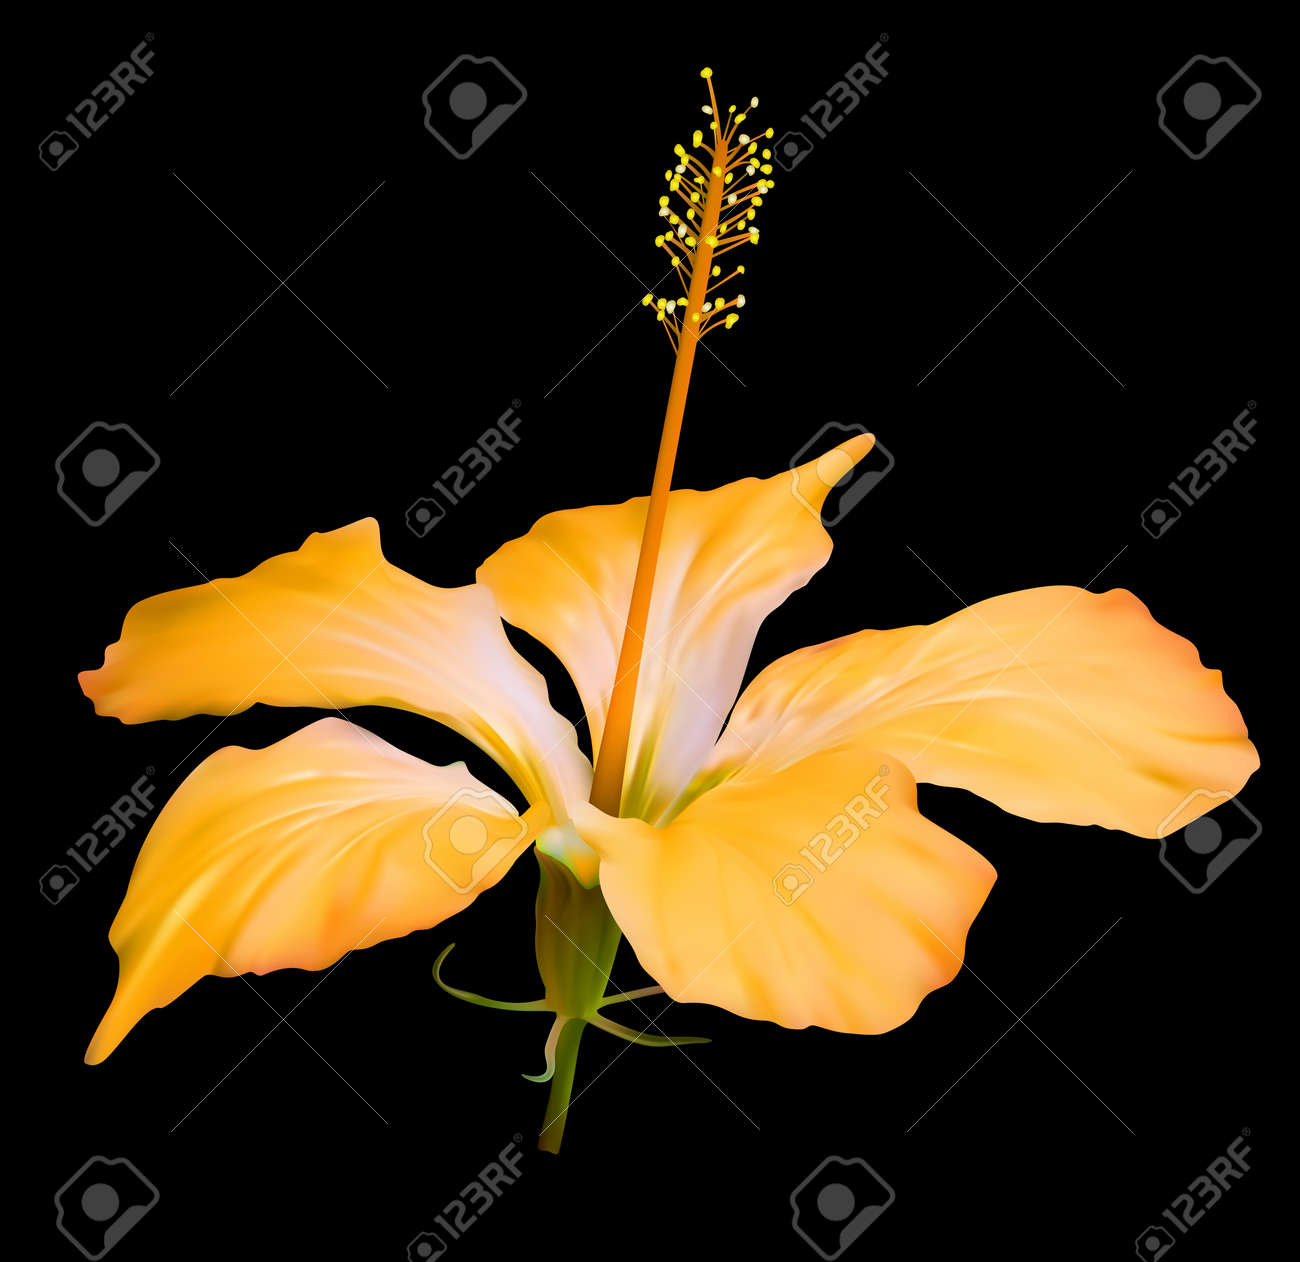 Yellow hibiscus flower blossom on black background royalty free vector yellow hibiscus flower blossom on black background izmirmasajfo